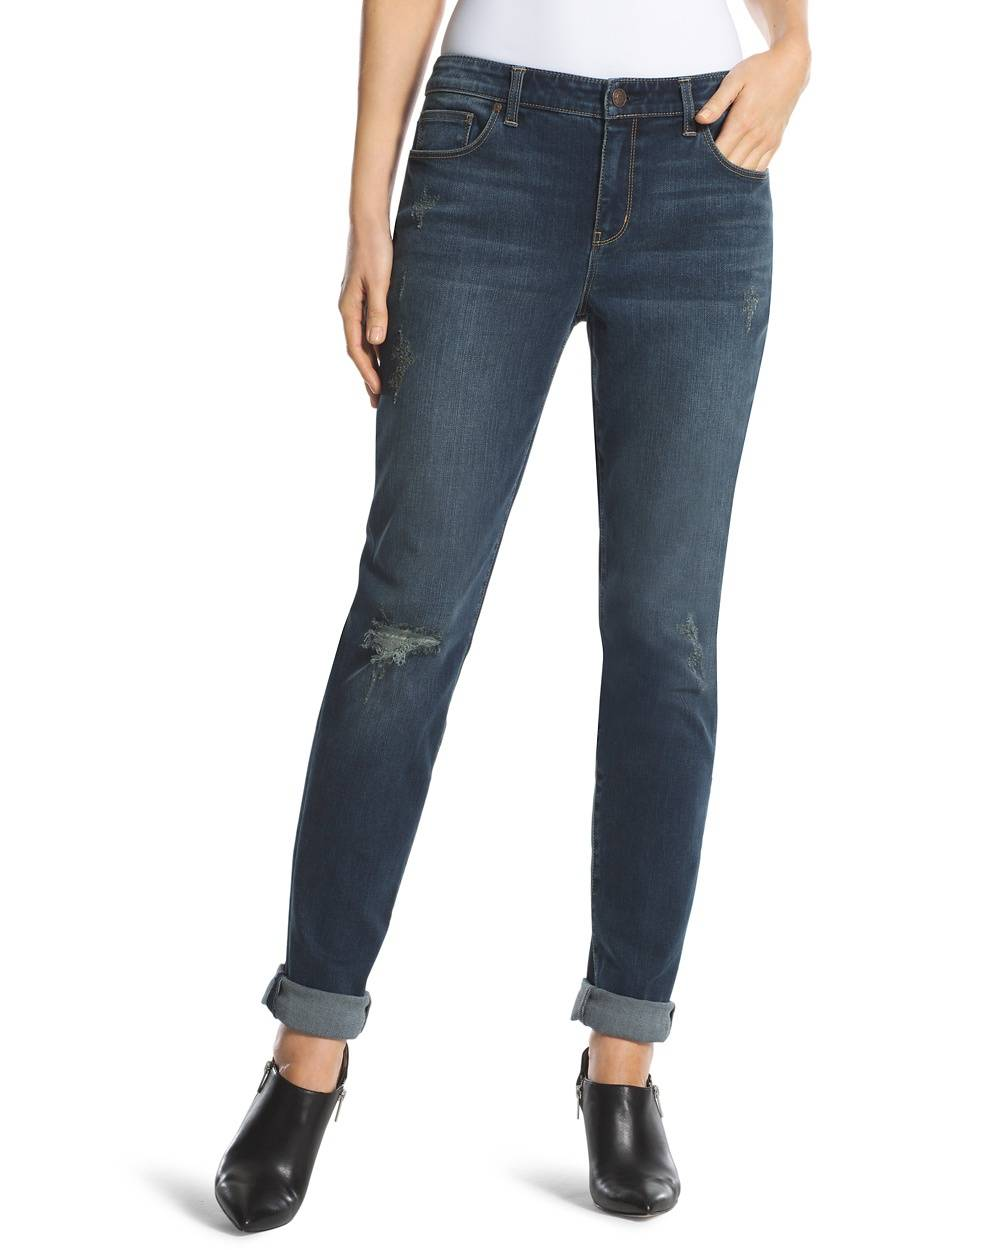 INTERNATIONAL WOMAN JEANS VERY HOT SELLING